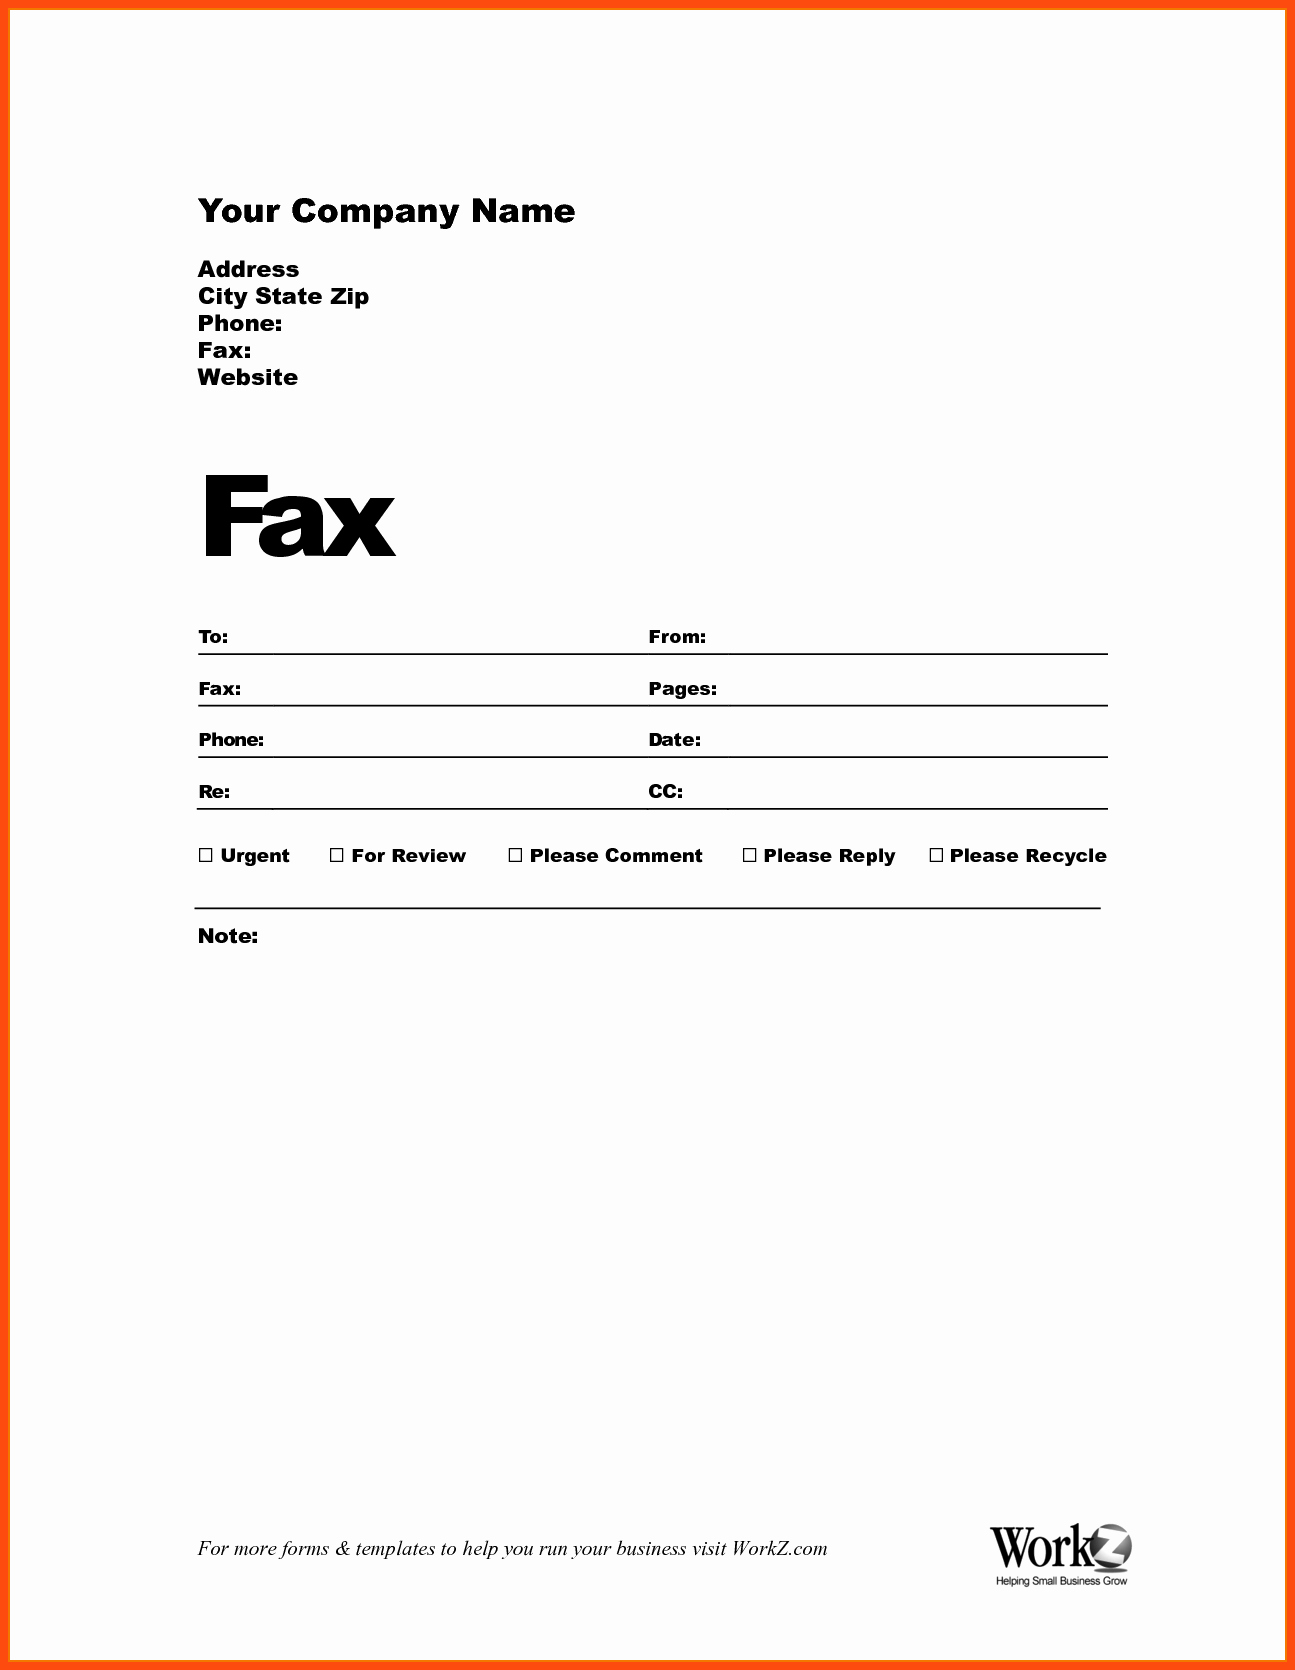 Printable Cover Sheet for Fax Fresh How to Fill Out A Fax Cover Sheet